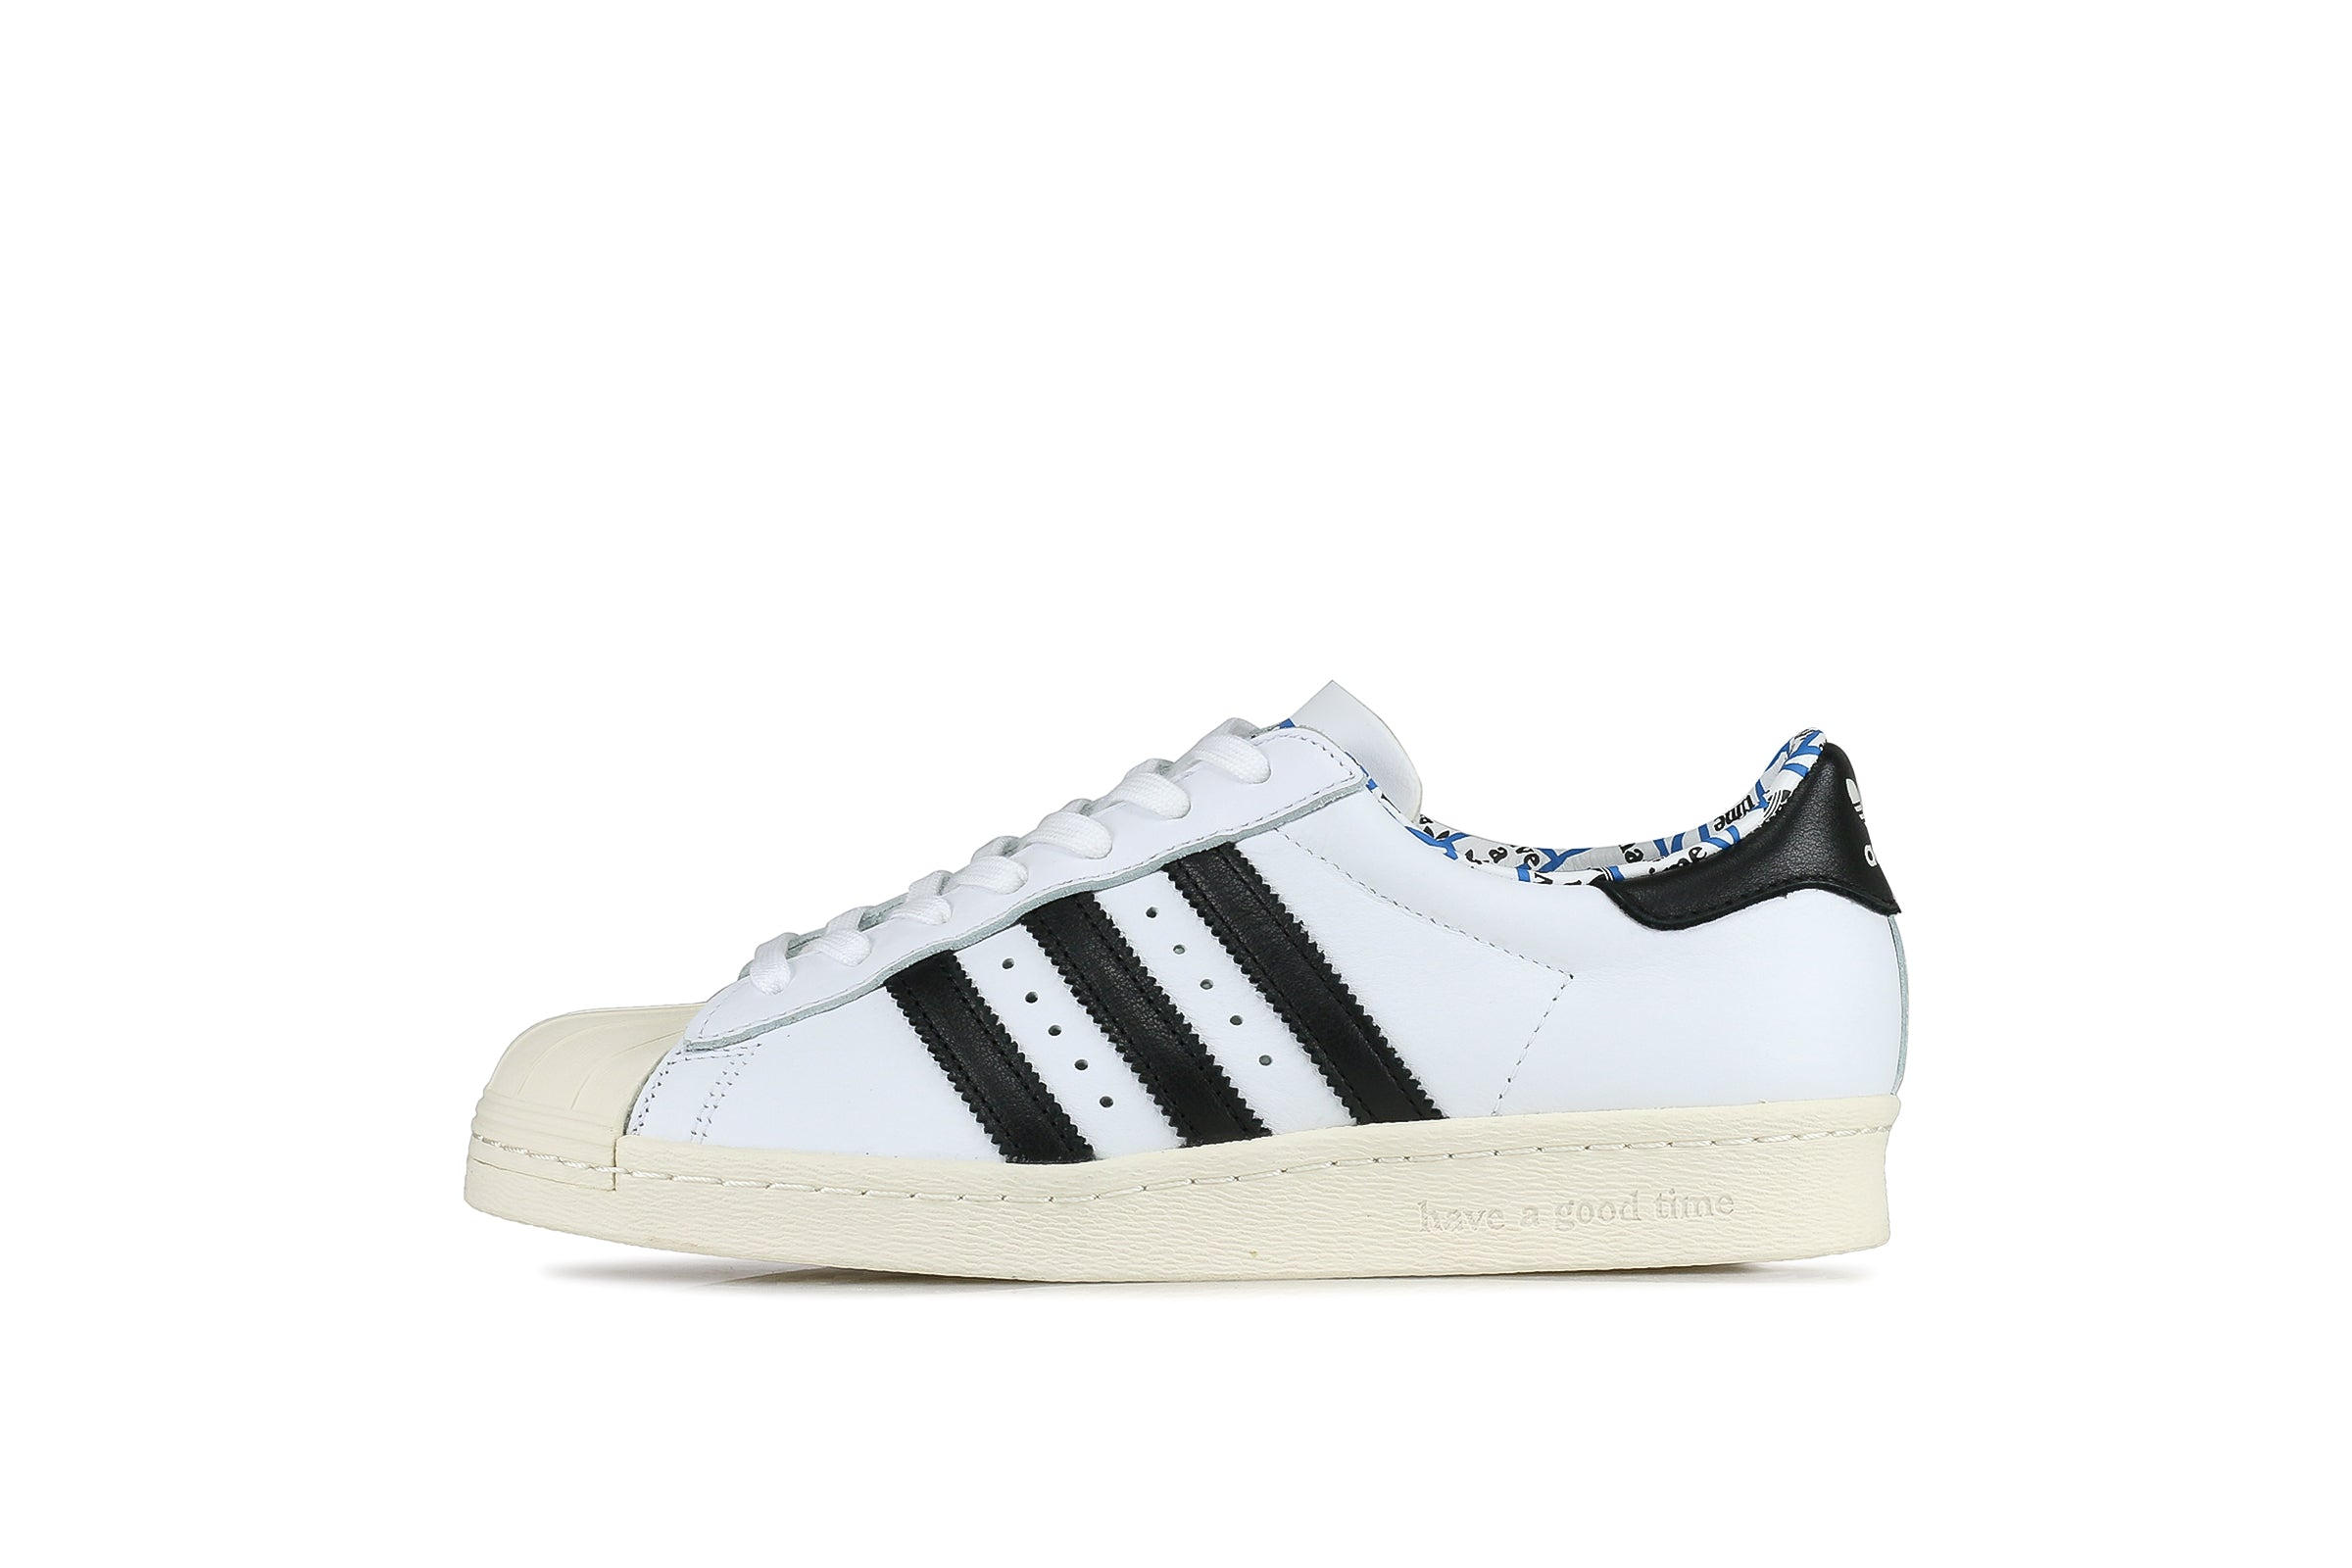 0a5c506061d2a Adidas Superstar 80s x Have A Good Time